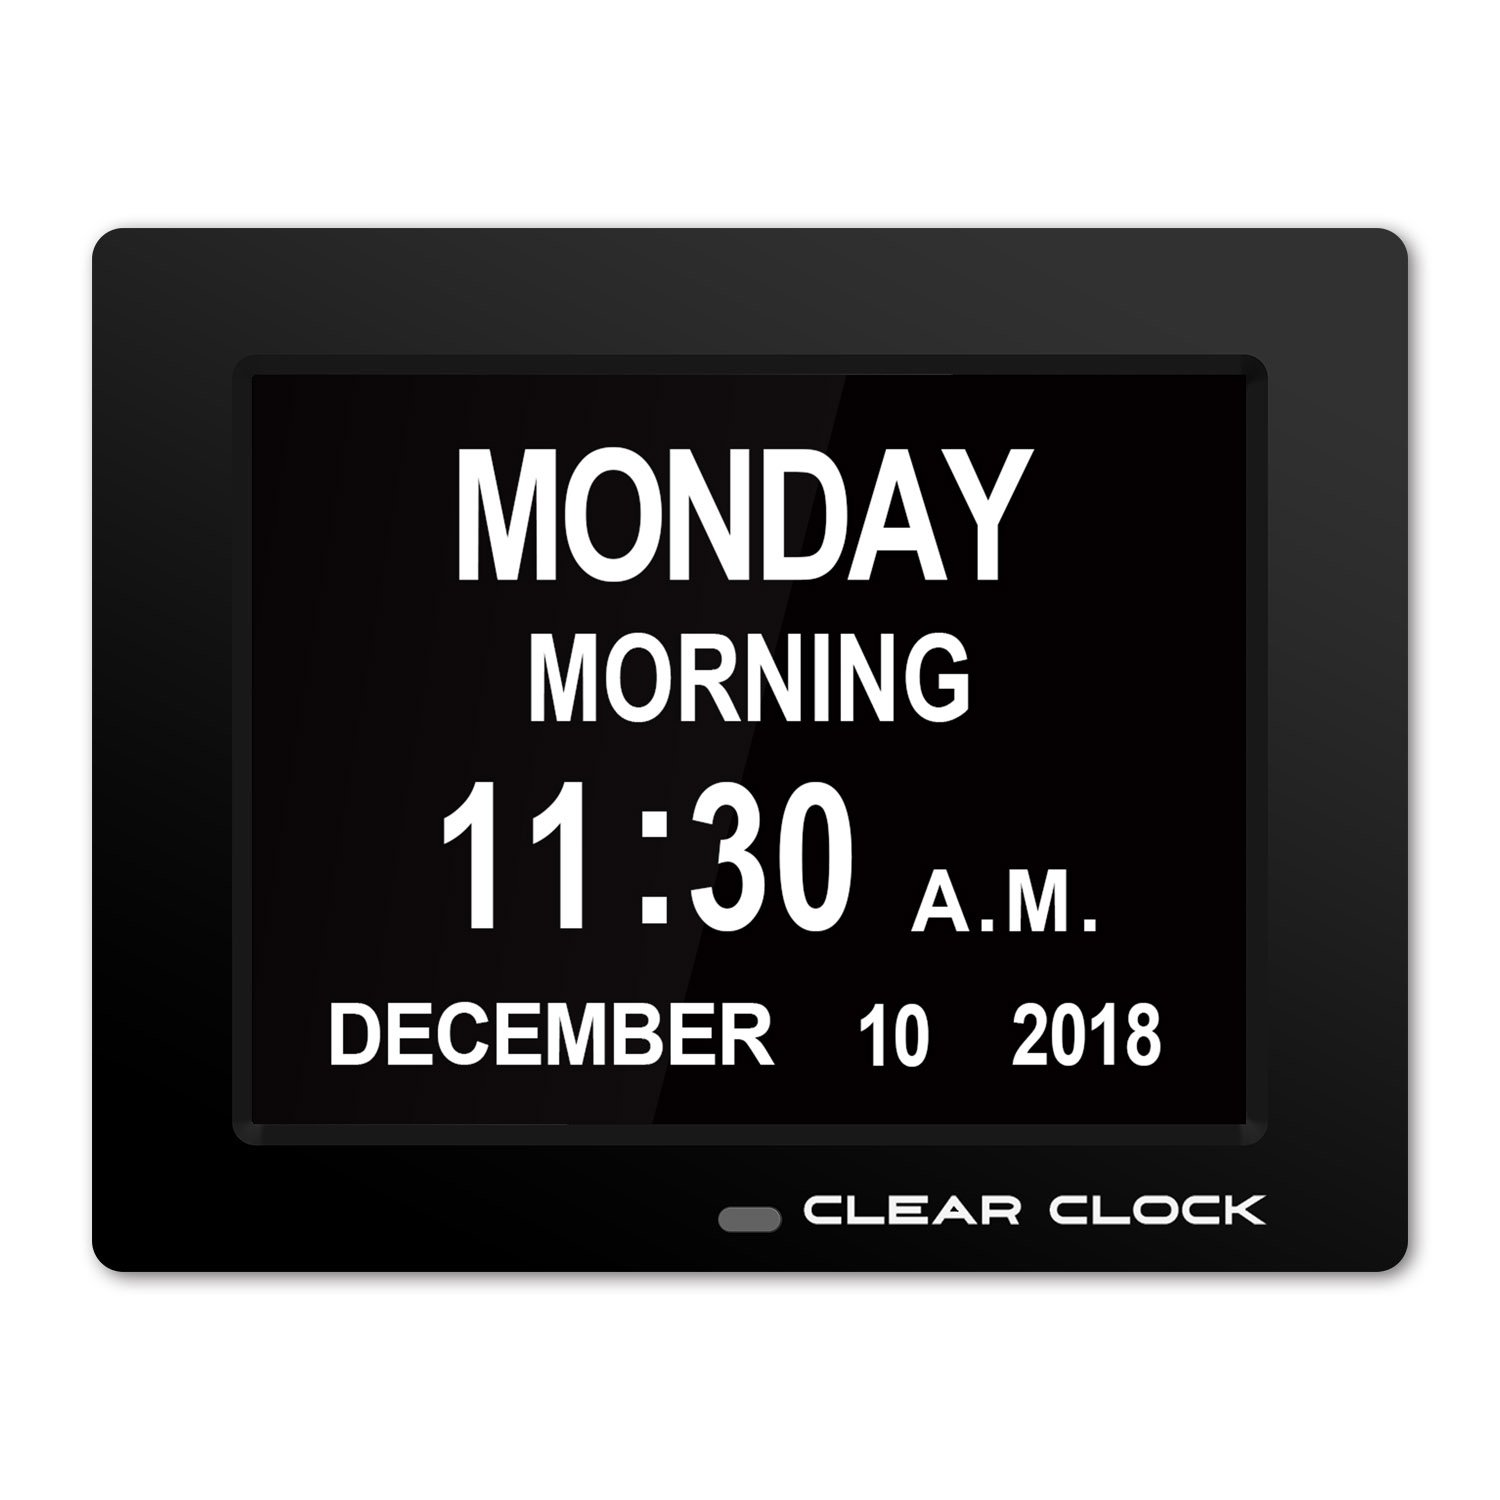 Clear Clock [Newest Version] Extra Large Digital Memory Loss Calendar Day Clock With Optional Day Cycle + Alarm Perfect For Elderly + Impaired Vision Dementia Clock Black CC180-BLK